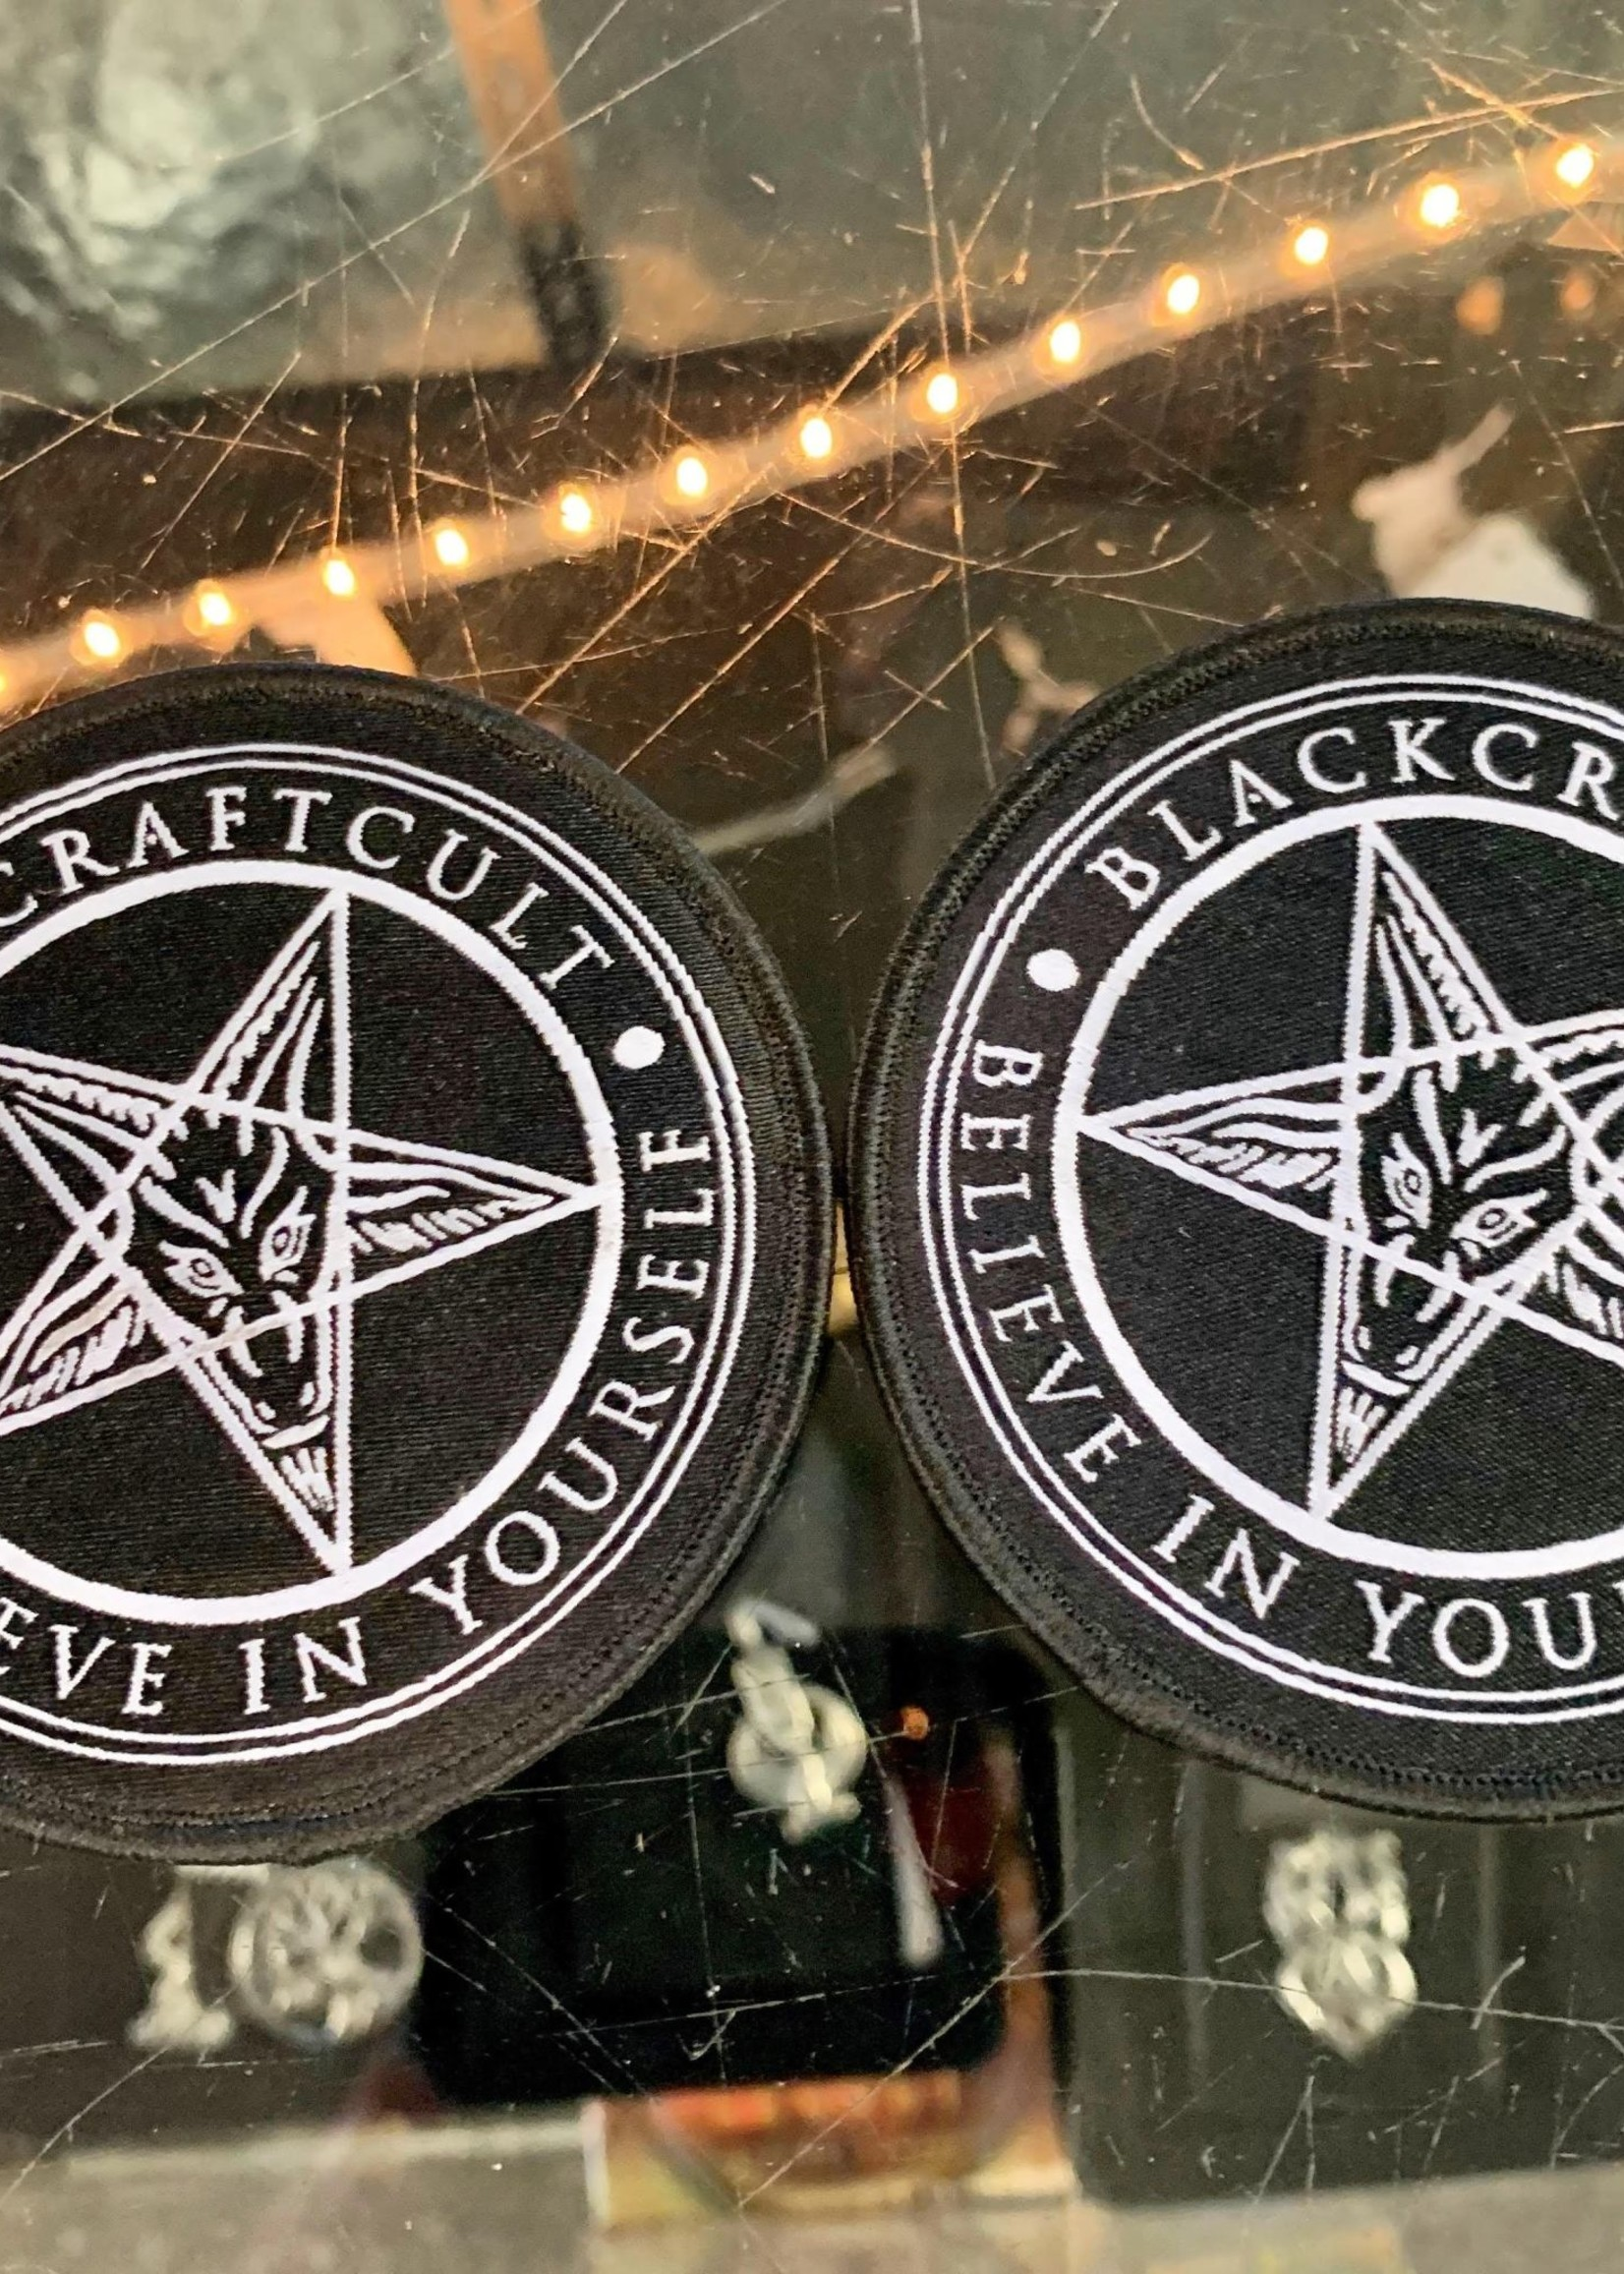 Blackcraft Cult Blackcraft Cult Believe In Yourself Iron-on Patch